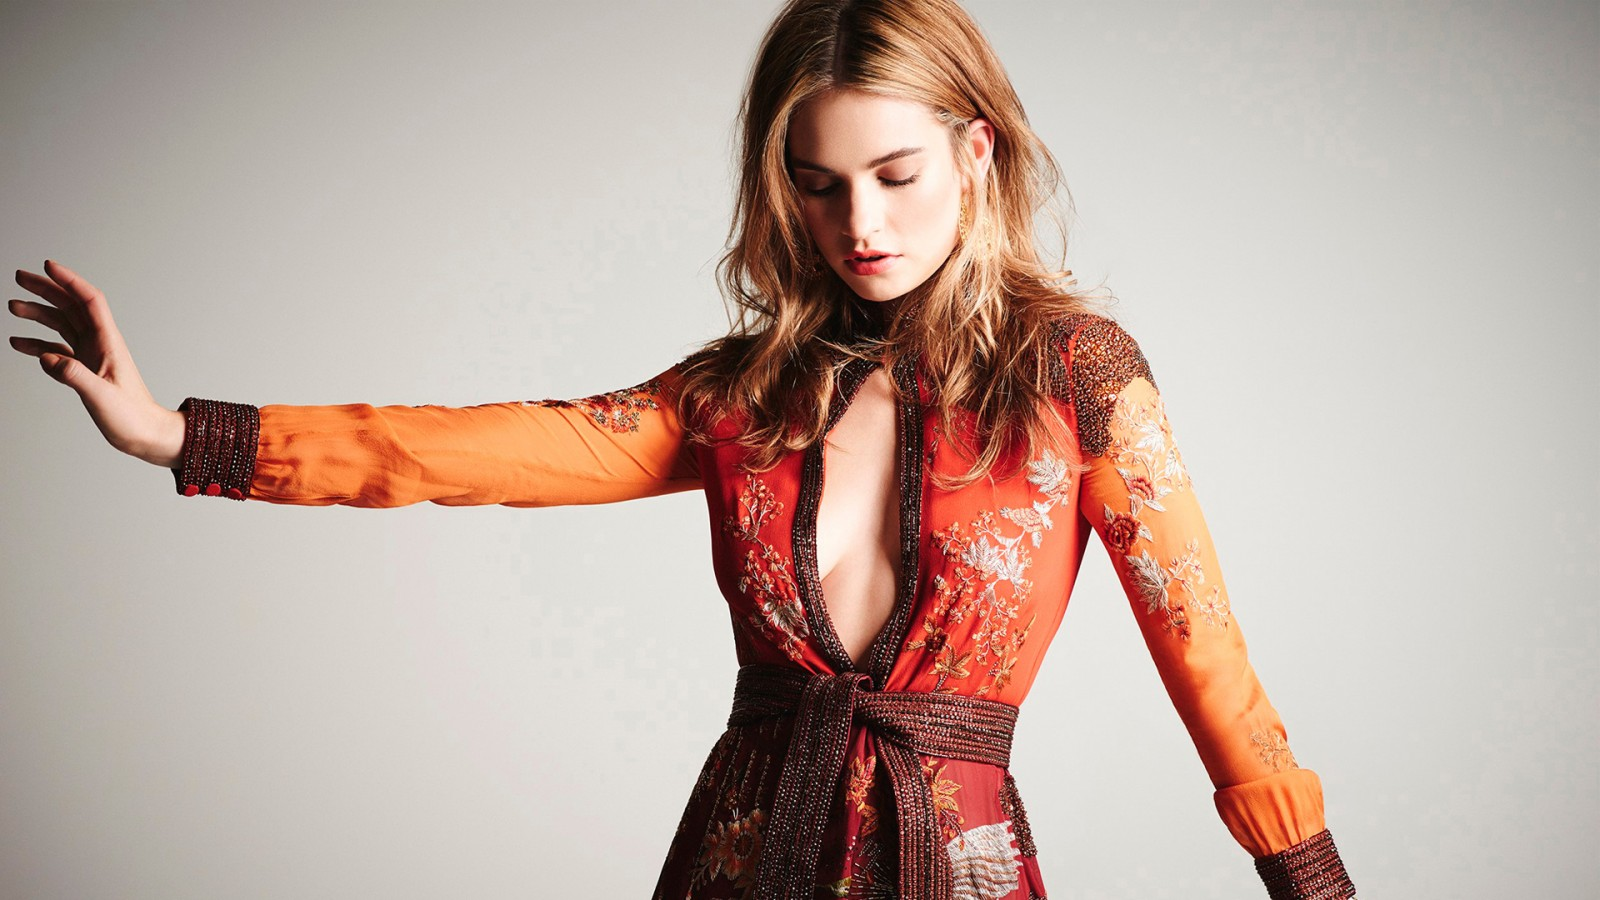 Iphone Wallpaper Hd Red Lily James 2015 Wallpapers Hd Wallpapers Id 15015